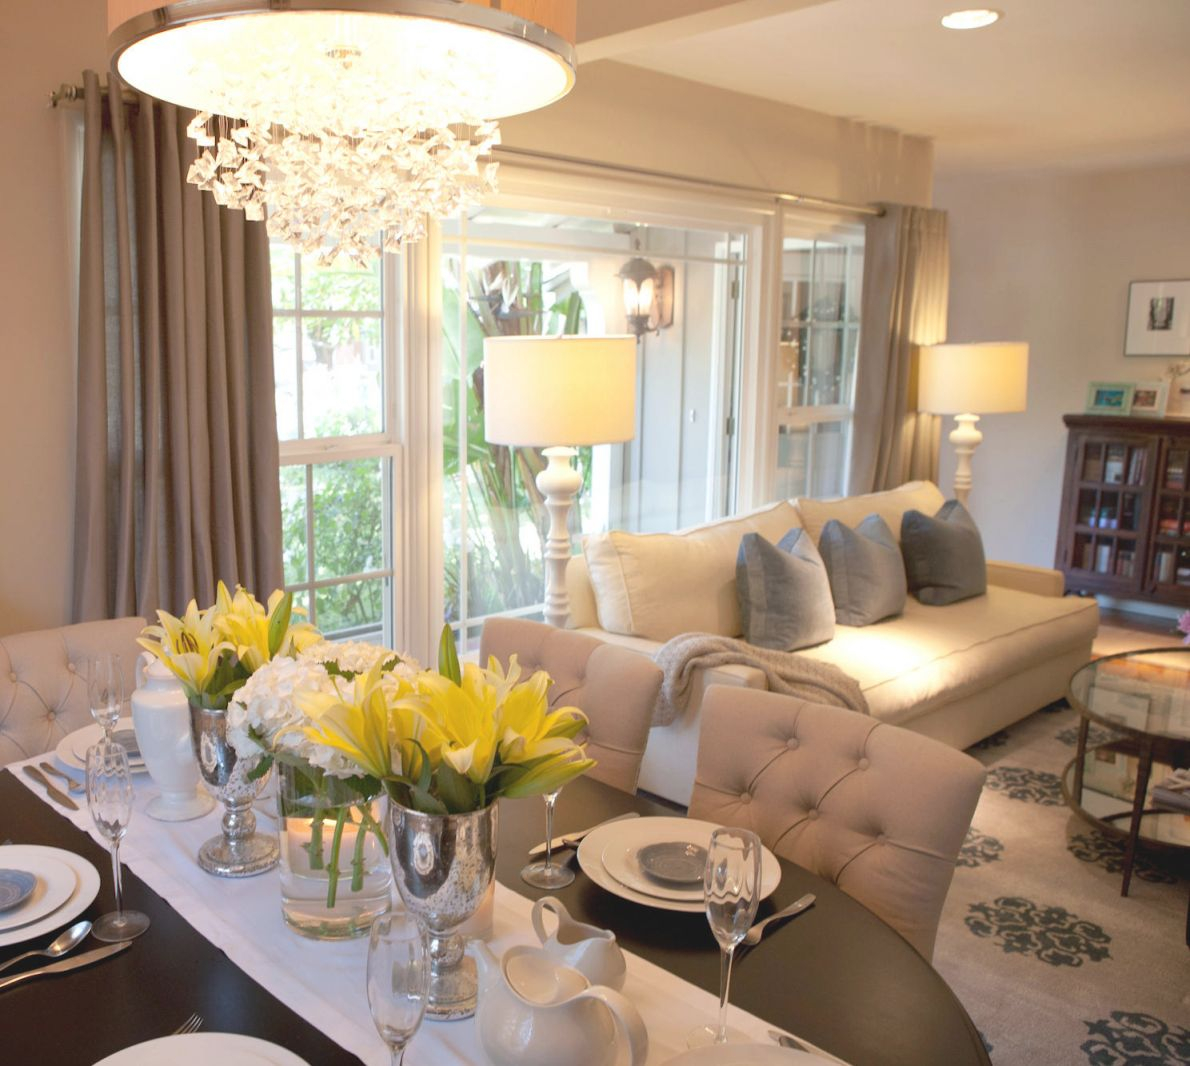 Dining Sitting Room Ideas – House N Decor with Lovely Living Room And Dining Room Combo Decorating Ideas